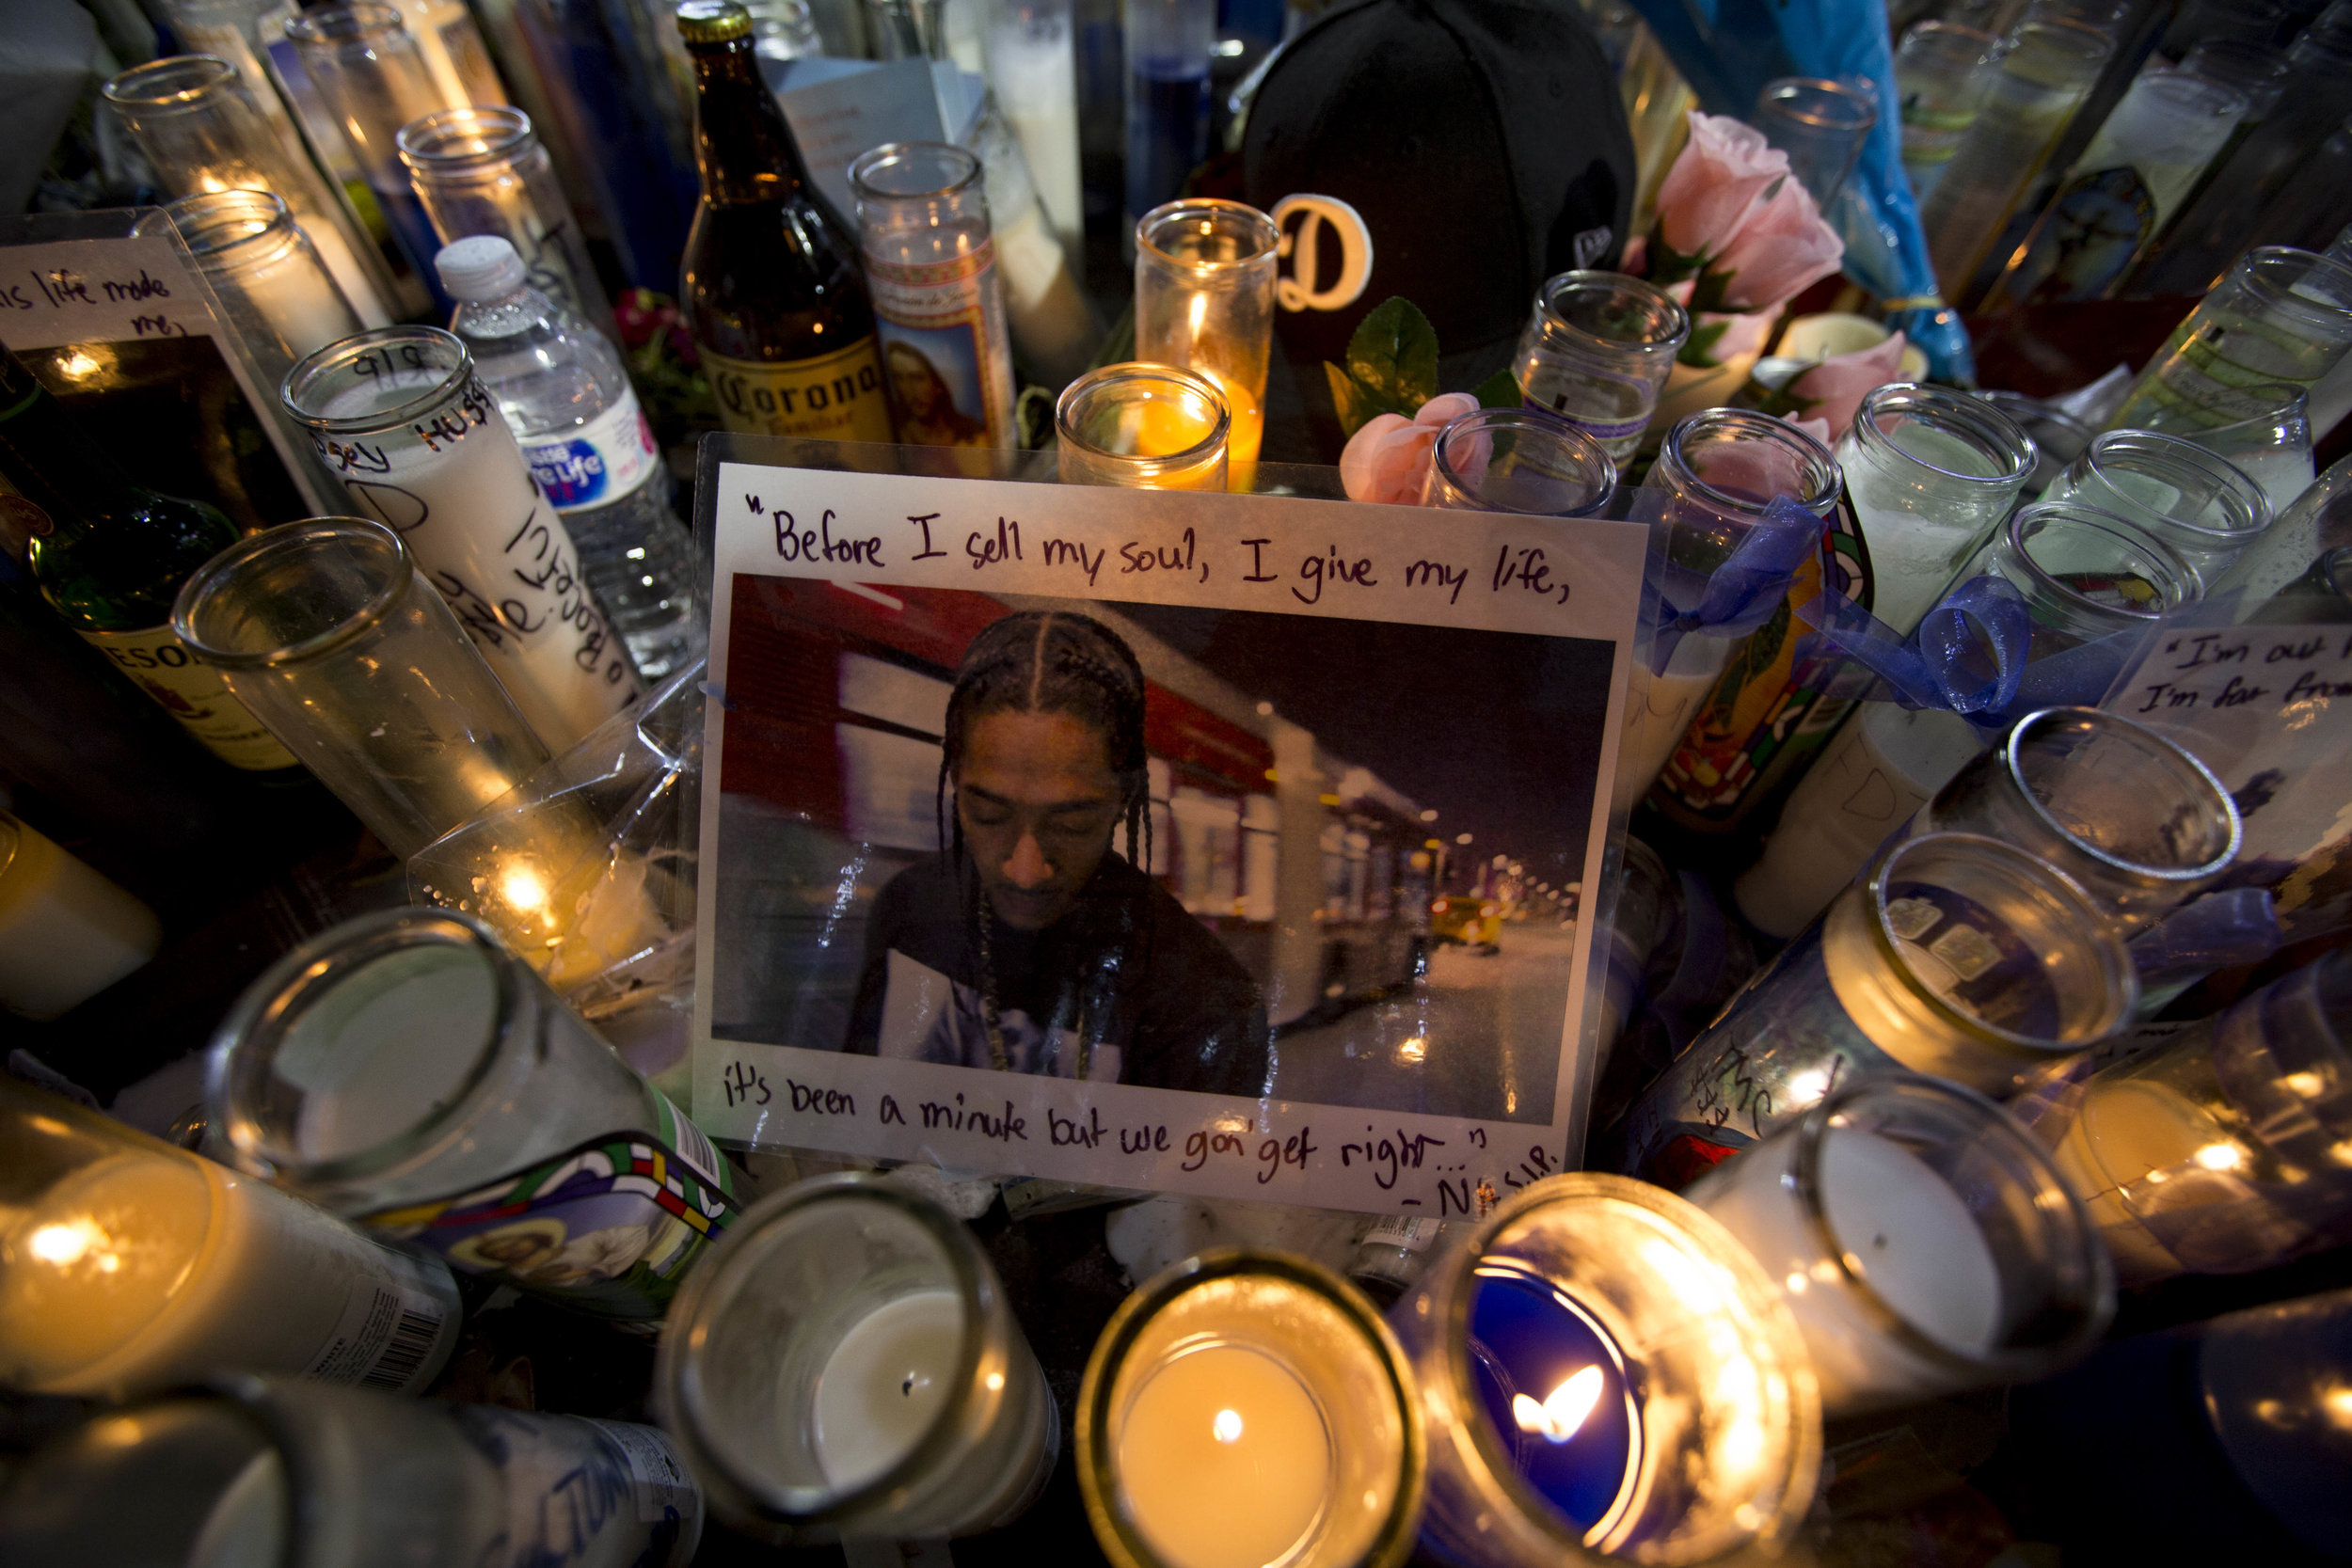 """Candles surround a photo of Nipsey Hussle that was placed at the makeshift memorial in front of The Marathon Clothing store off of Slauson Avenue and Crenshaw Boulevard in Los Angeles, California on April 6, 2019. The lyrics, """"Before I sell my soul, I give my life, It's been a minute but we gon' get right..."""" from his song """"Love"""" are written in the margins of the photo.  (Jose Lopez)"""